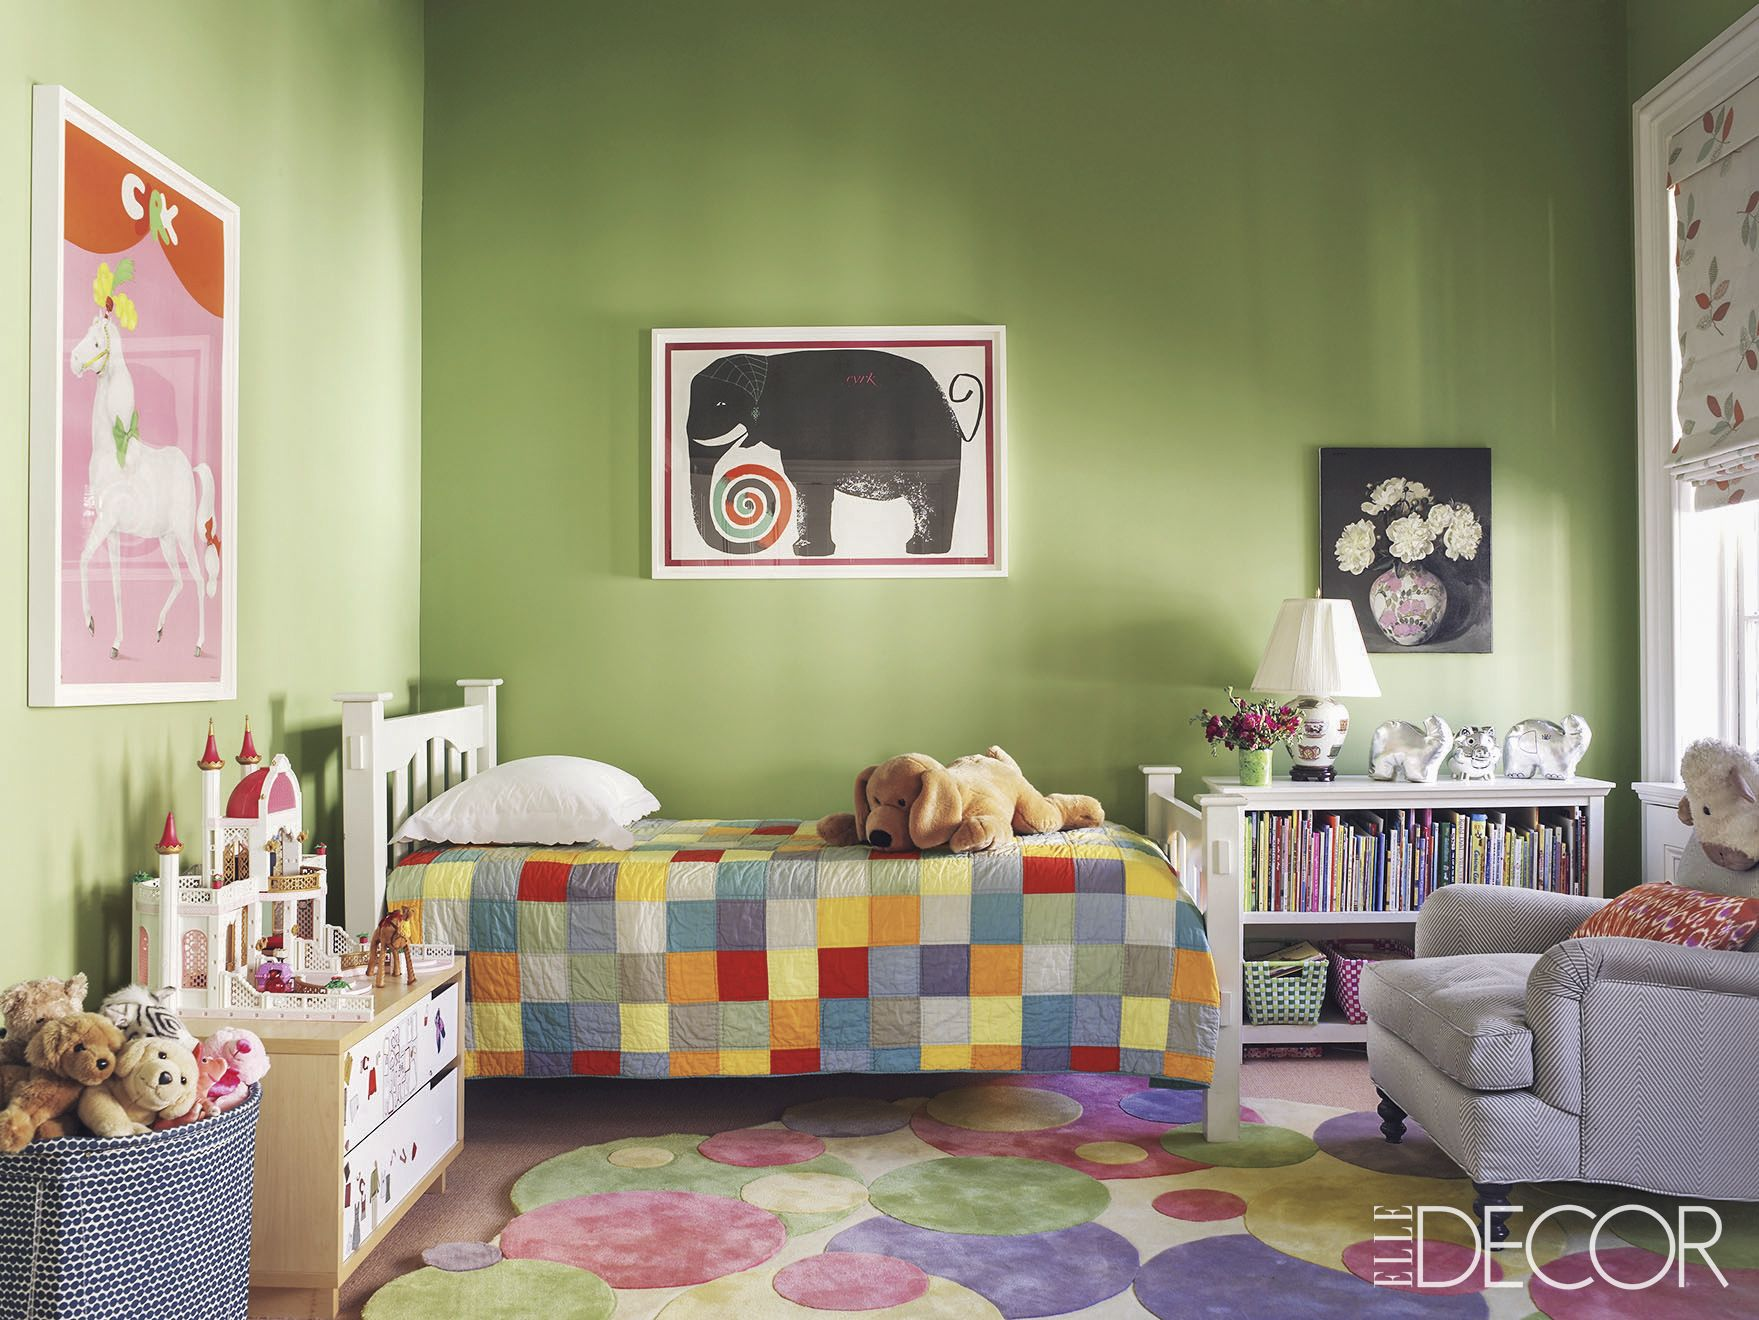 18 cool kids room decorating ideas kids room decor rh elledecor com Pottery Barn Kids kids room picture wall